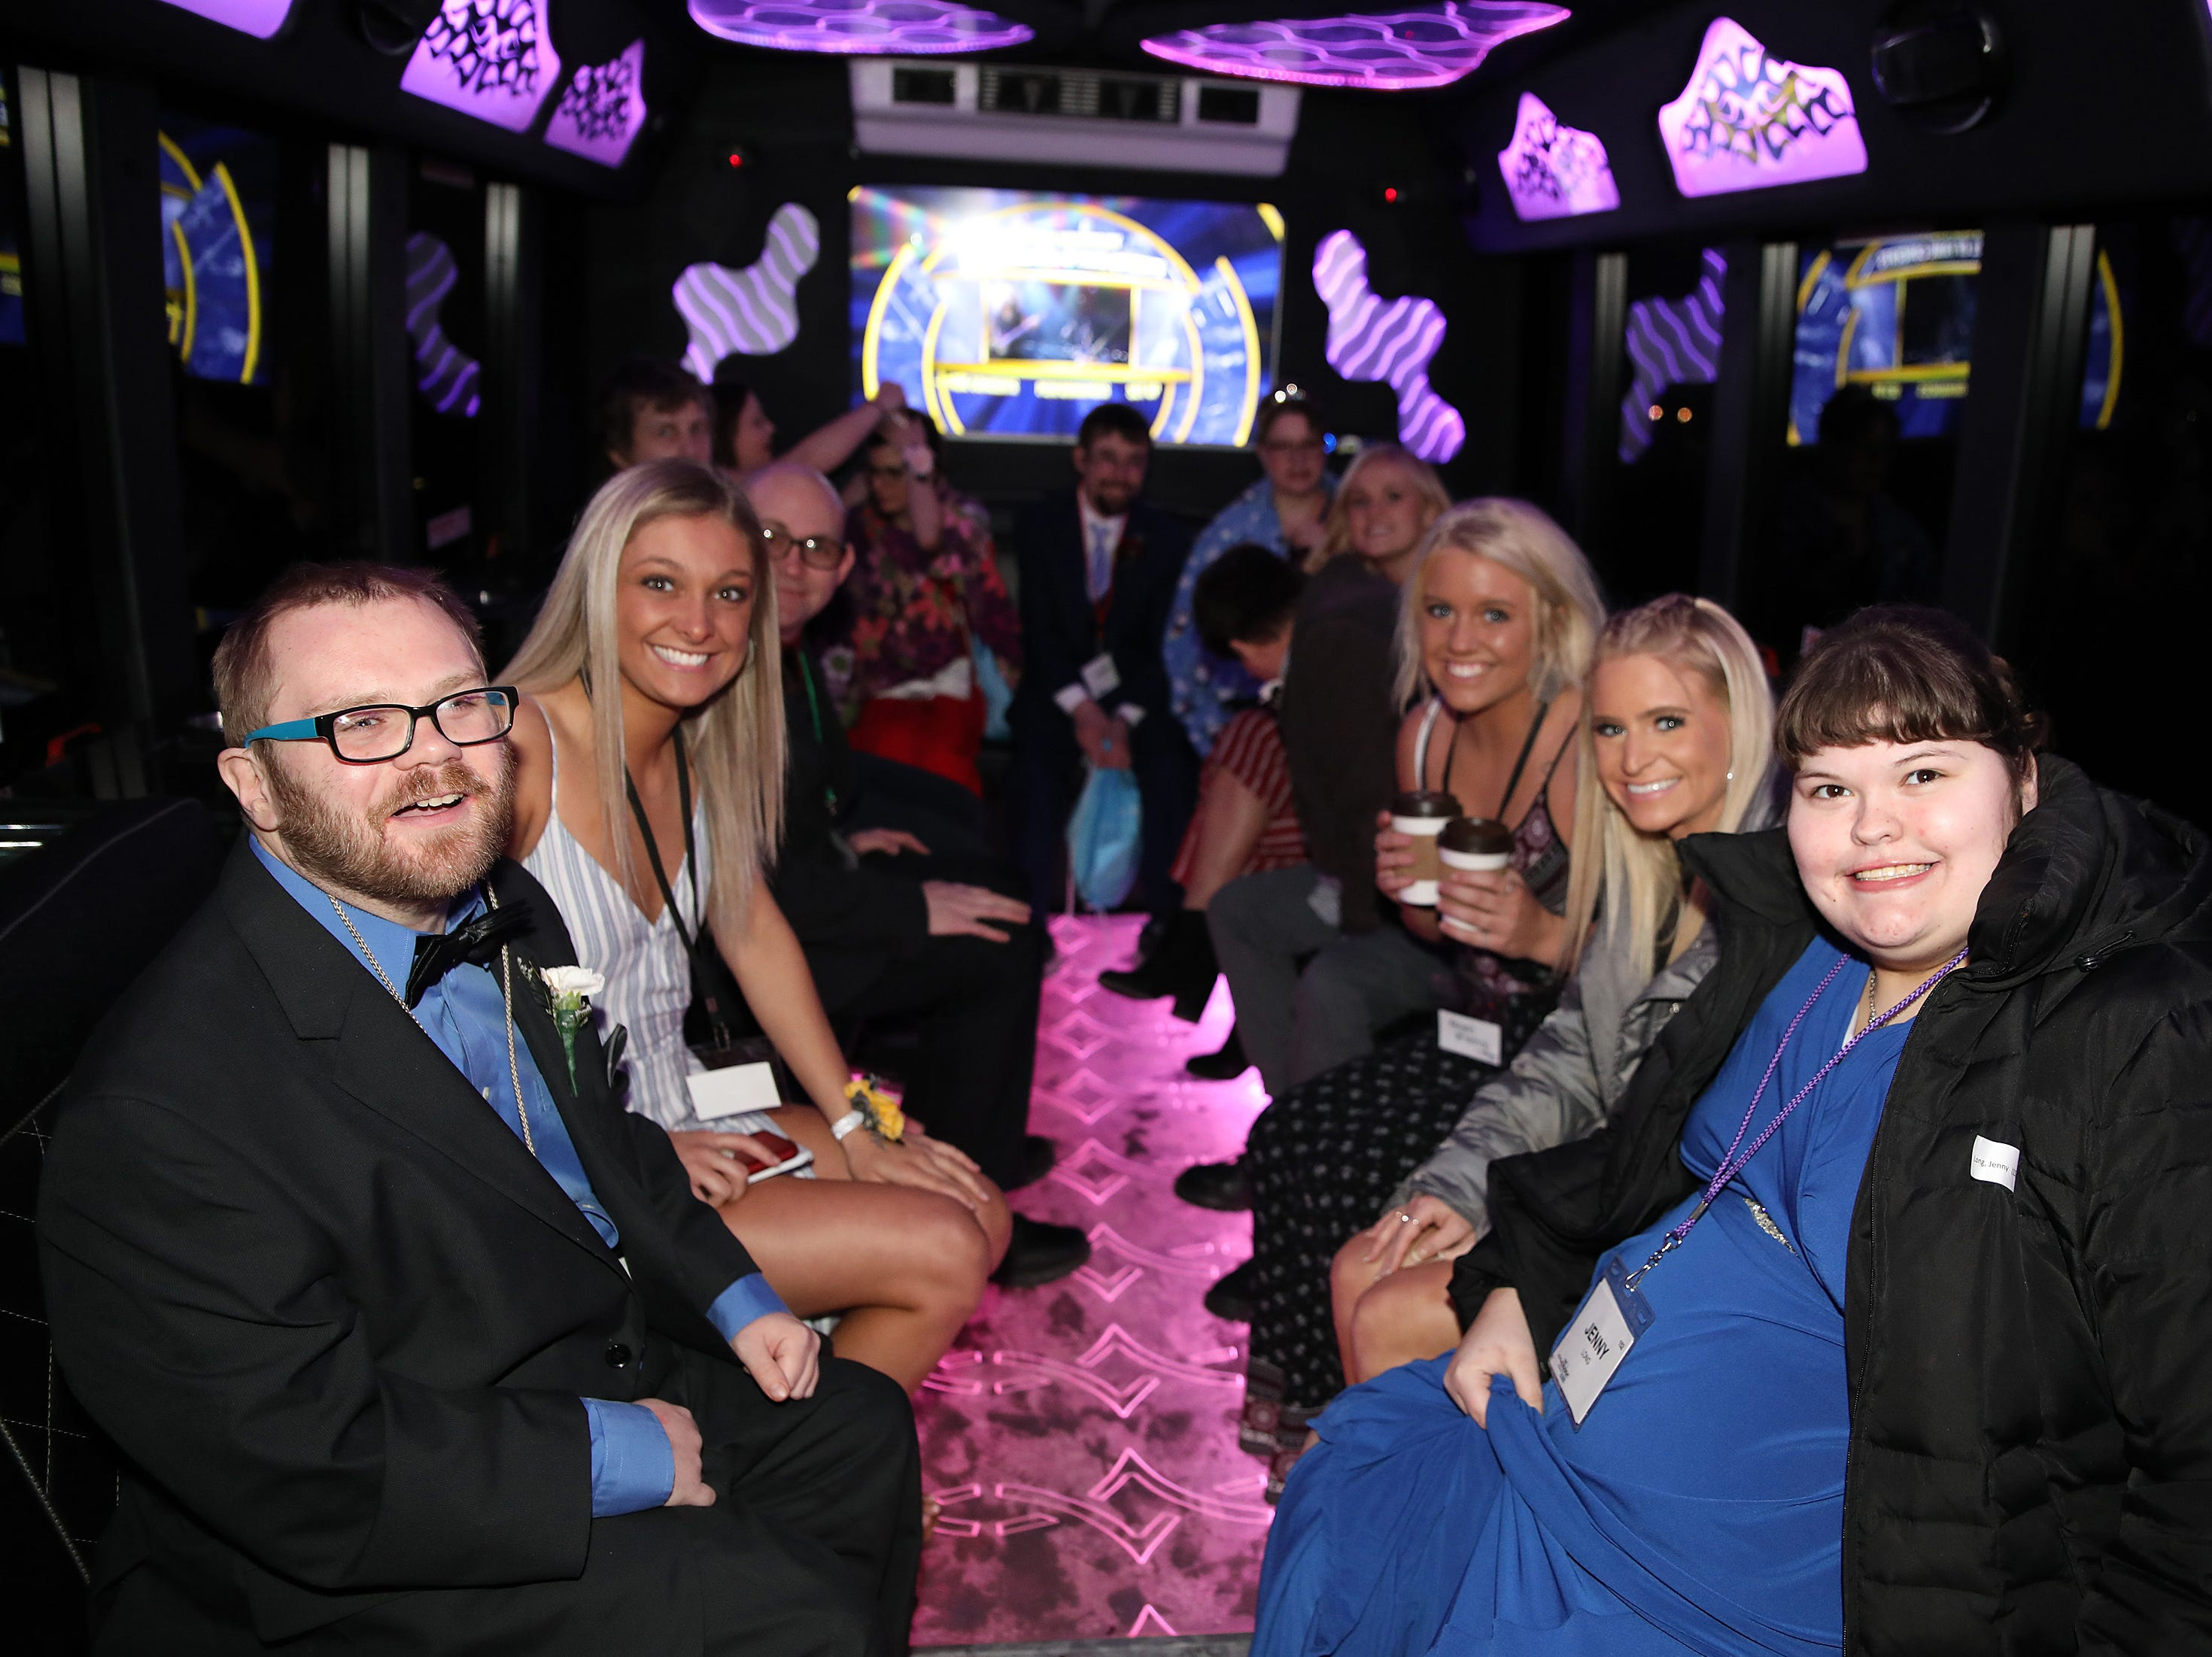 The limo-bus heads out for spin during the Night to Shine event at Prairie Ridge Church in Ankeny on Friday, Feb. 8, 2019. Sponsored by the Tim Tebow Foundation, the event for adults with special needs features a prom-like atmosphere with dancing, limo rides, food and more.